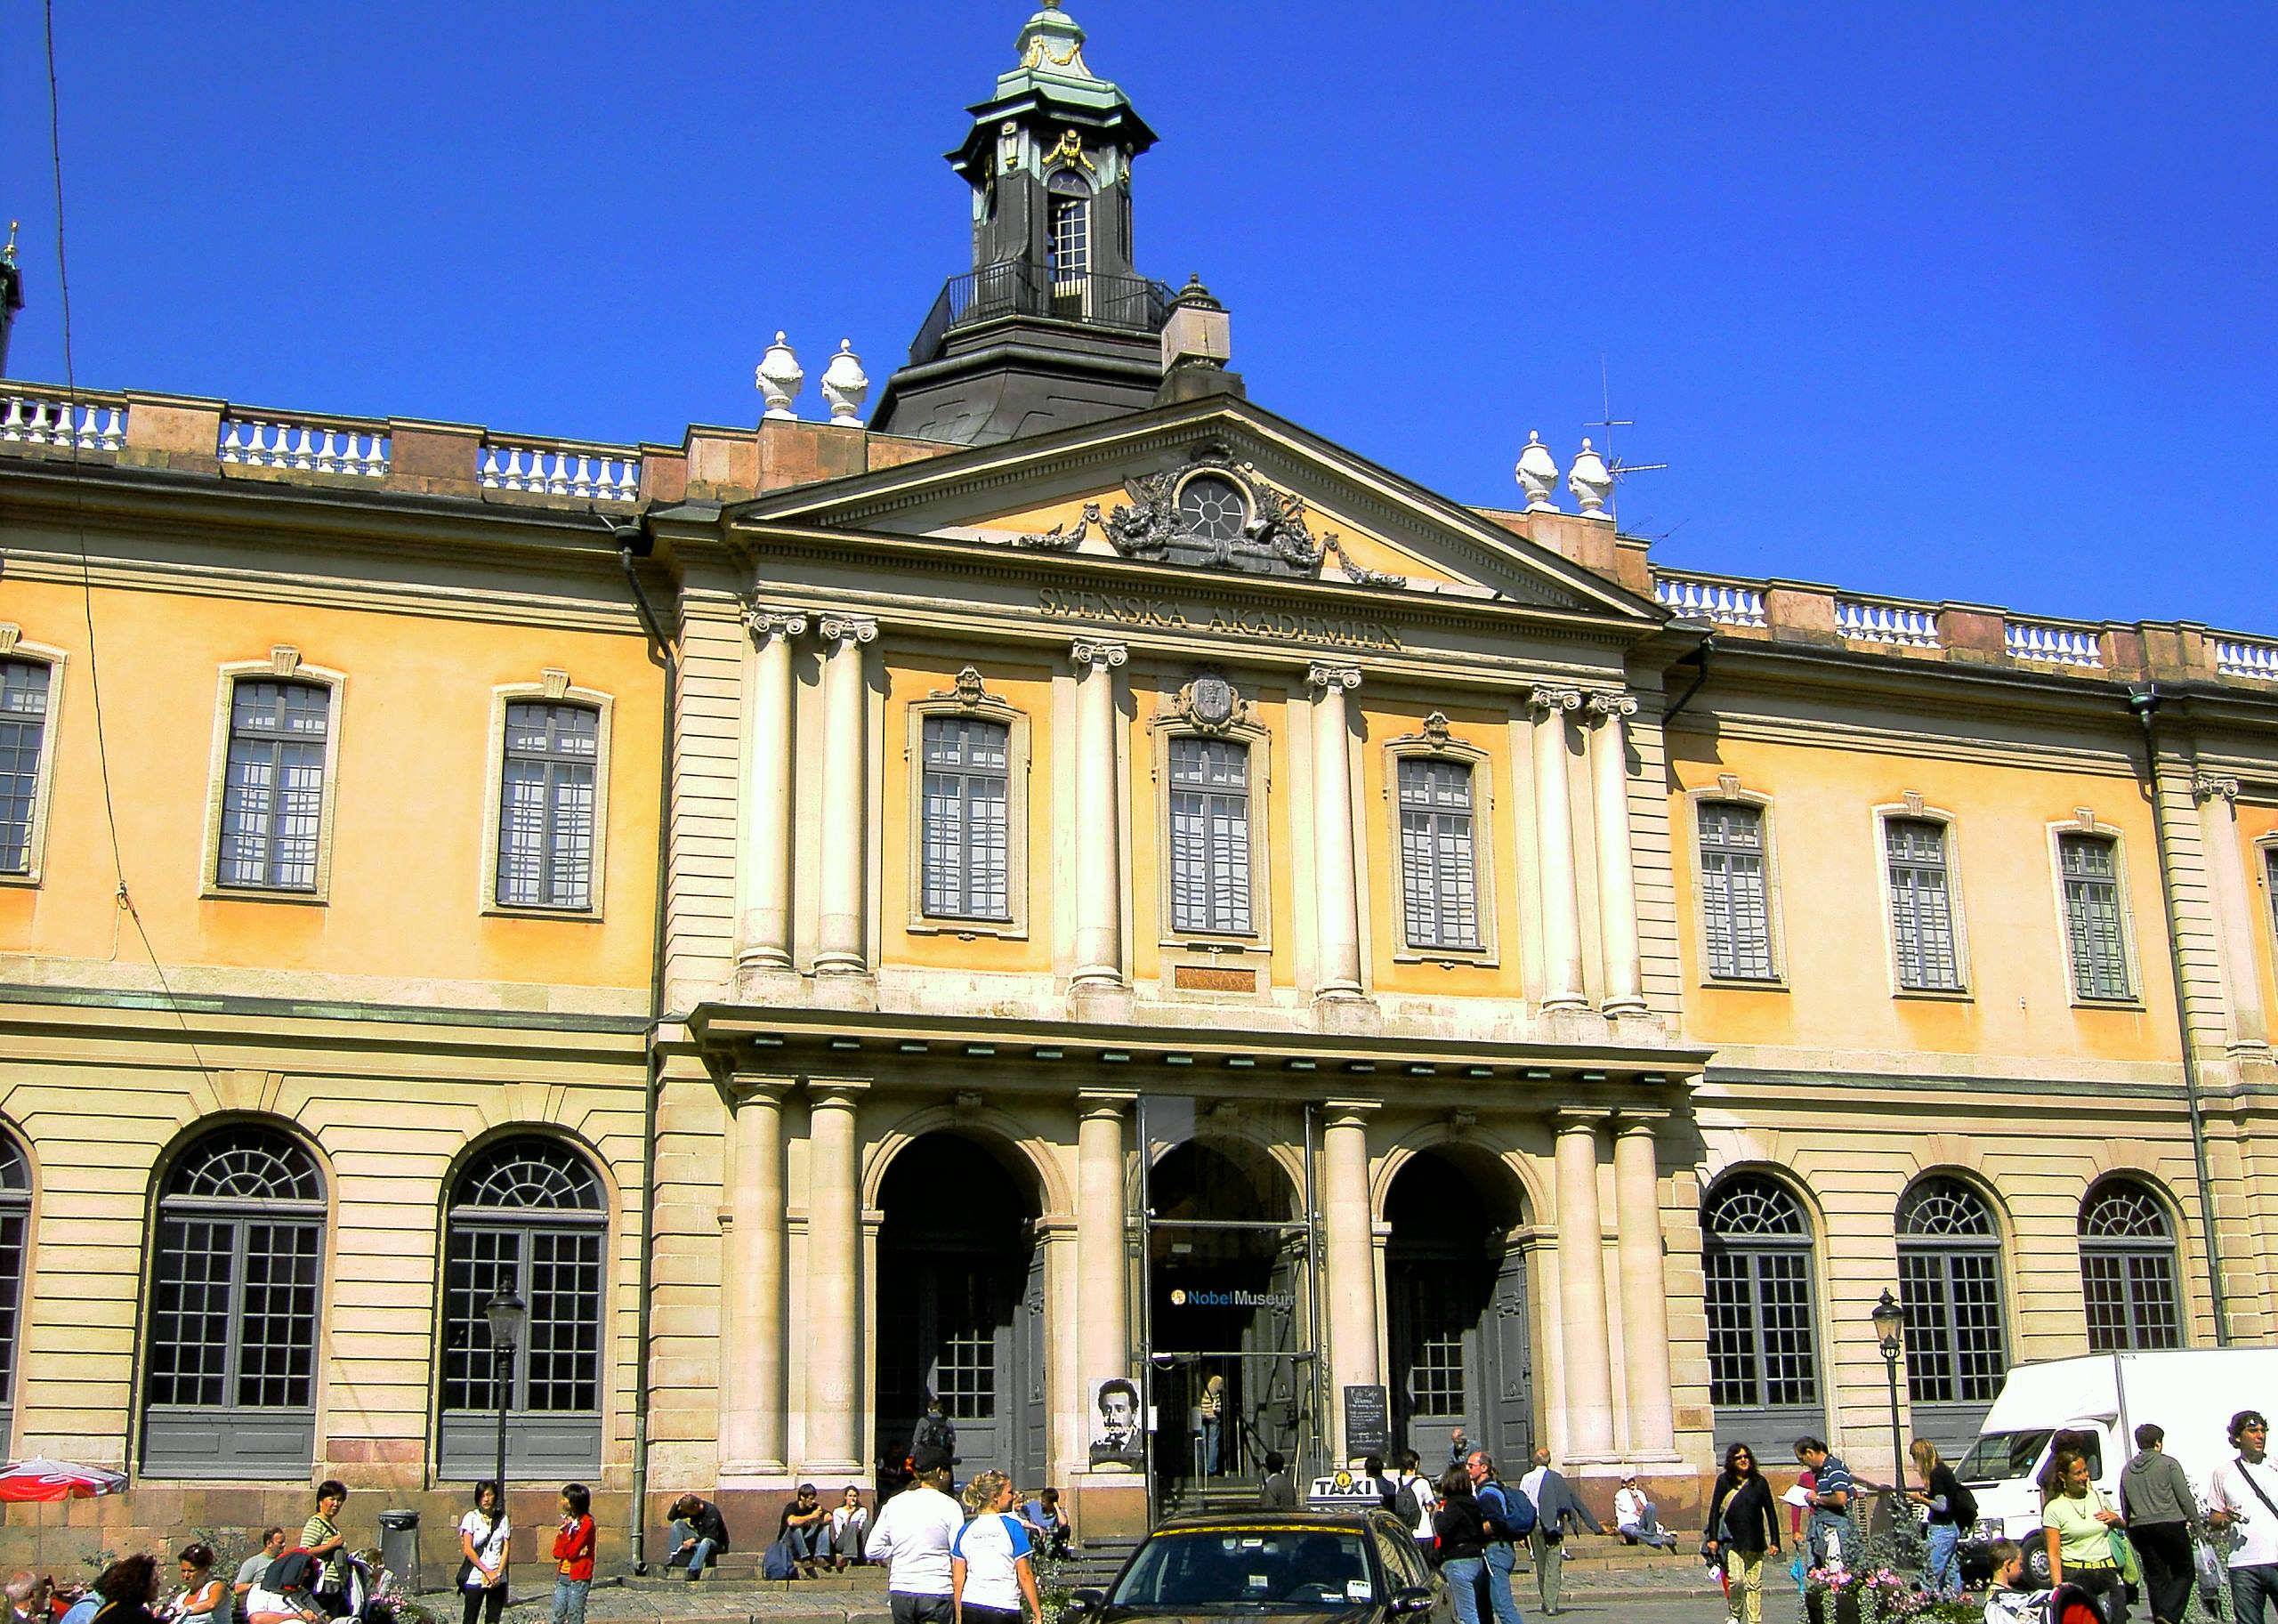 Nobel prize for literature is unlikely to return in 2019